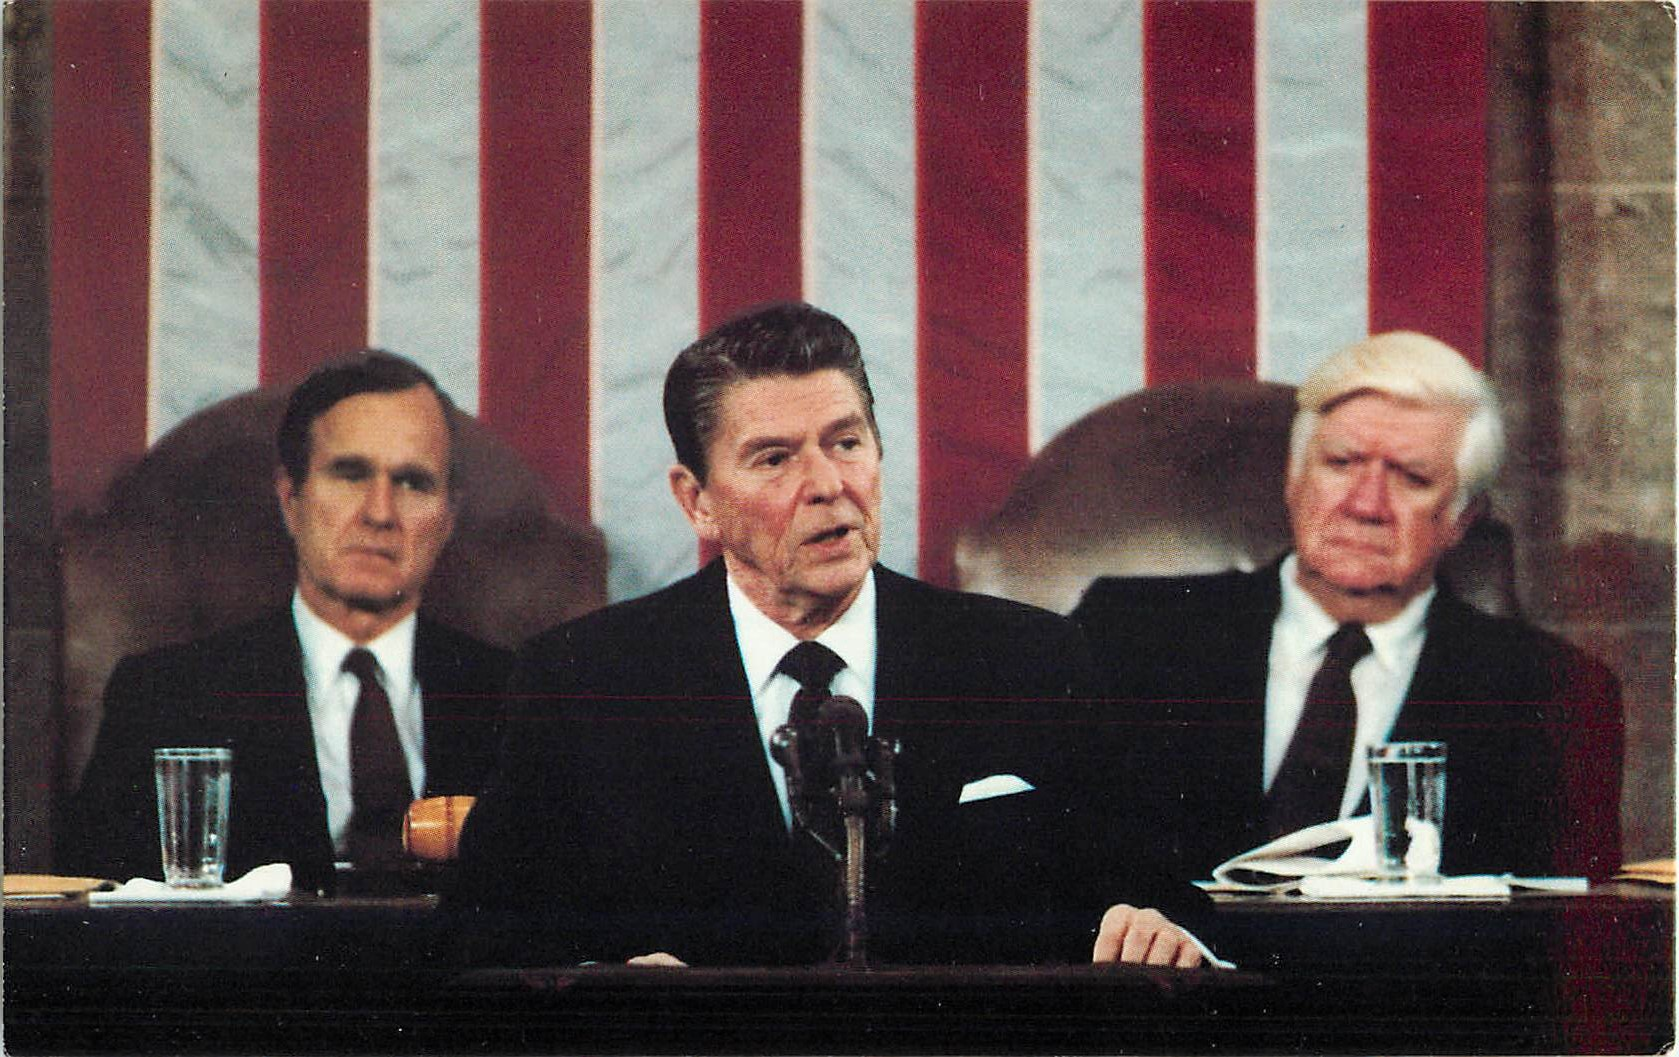 President Reagan, Vice President Bush, and House Speaker